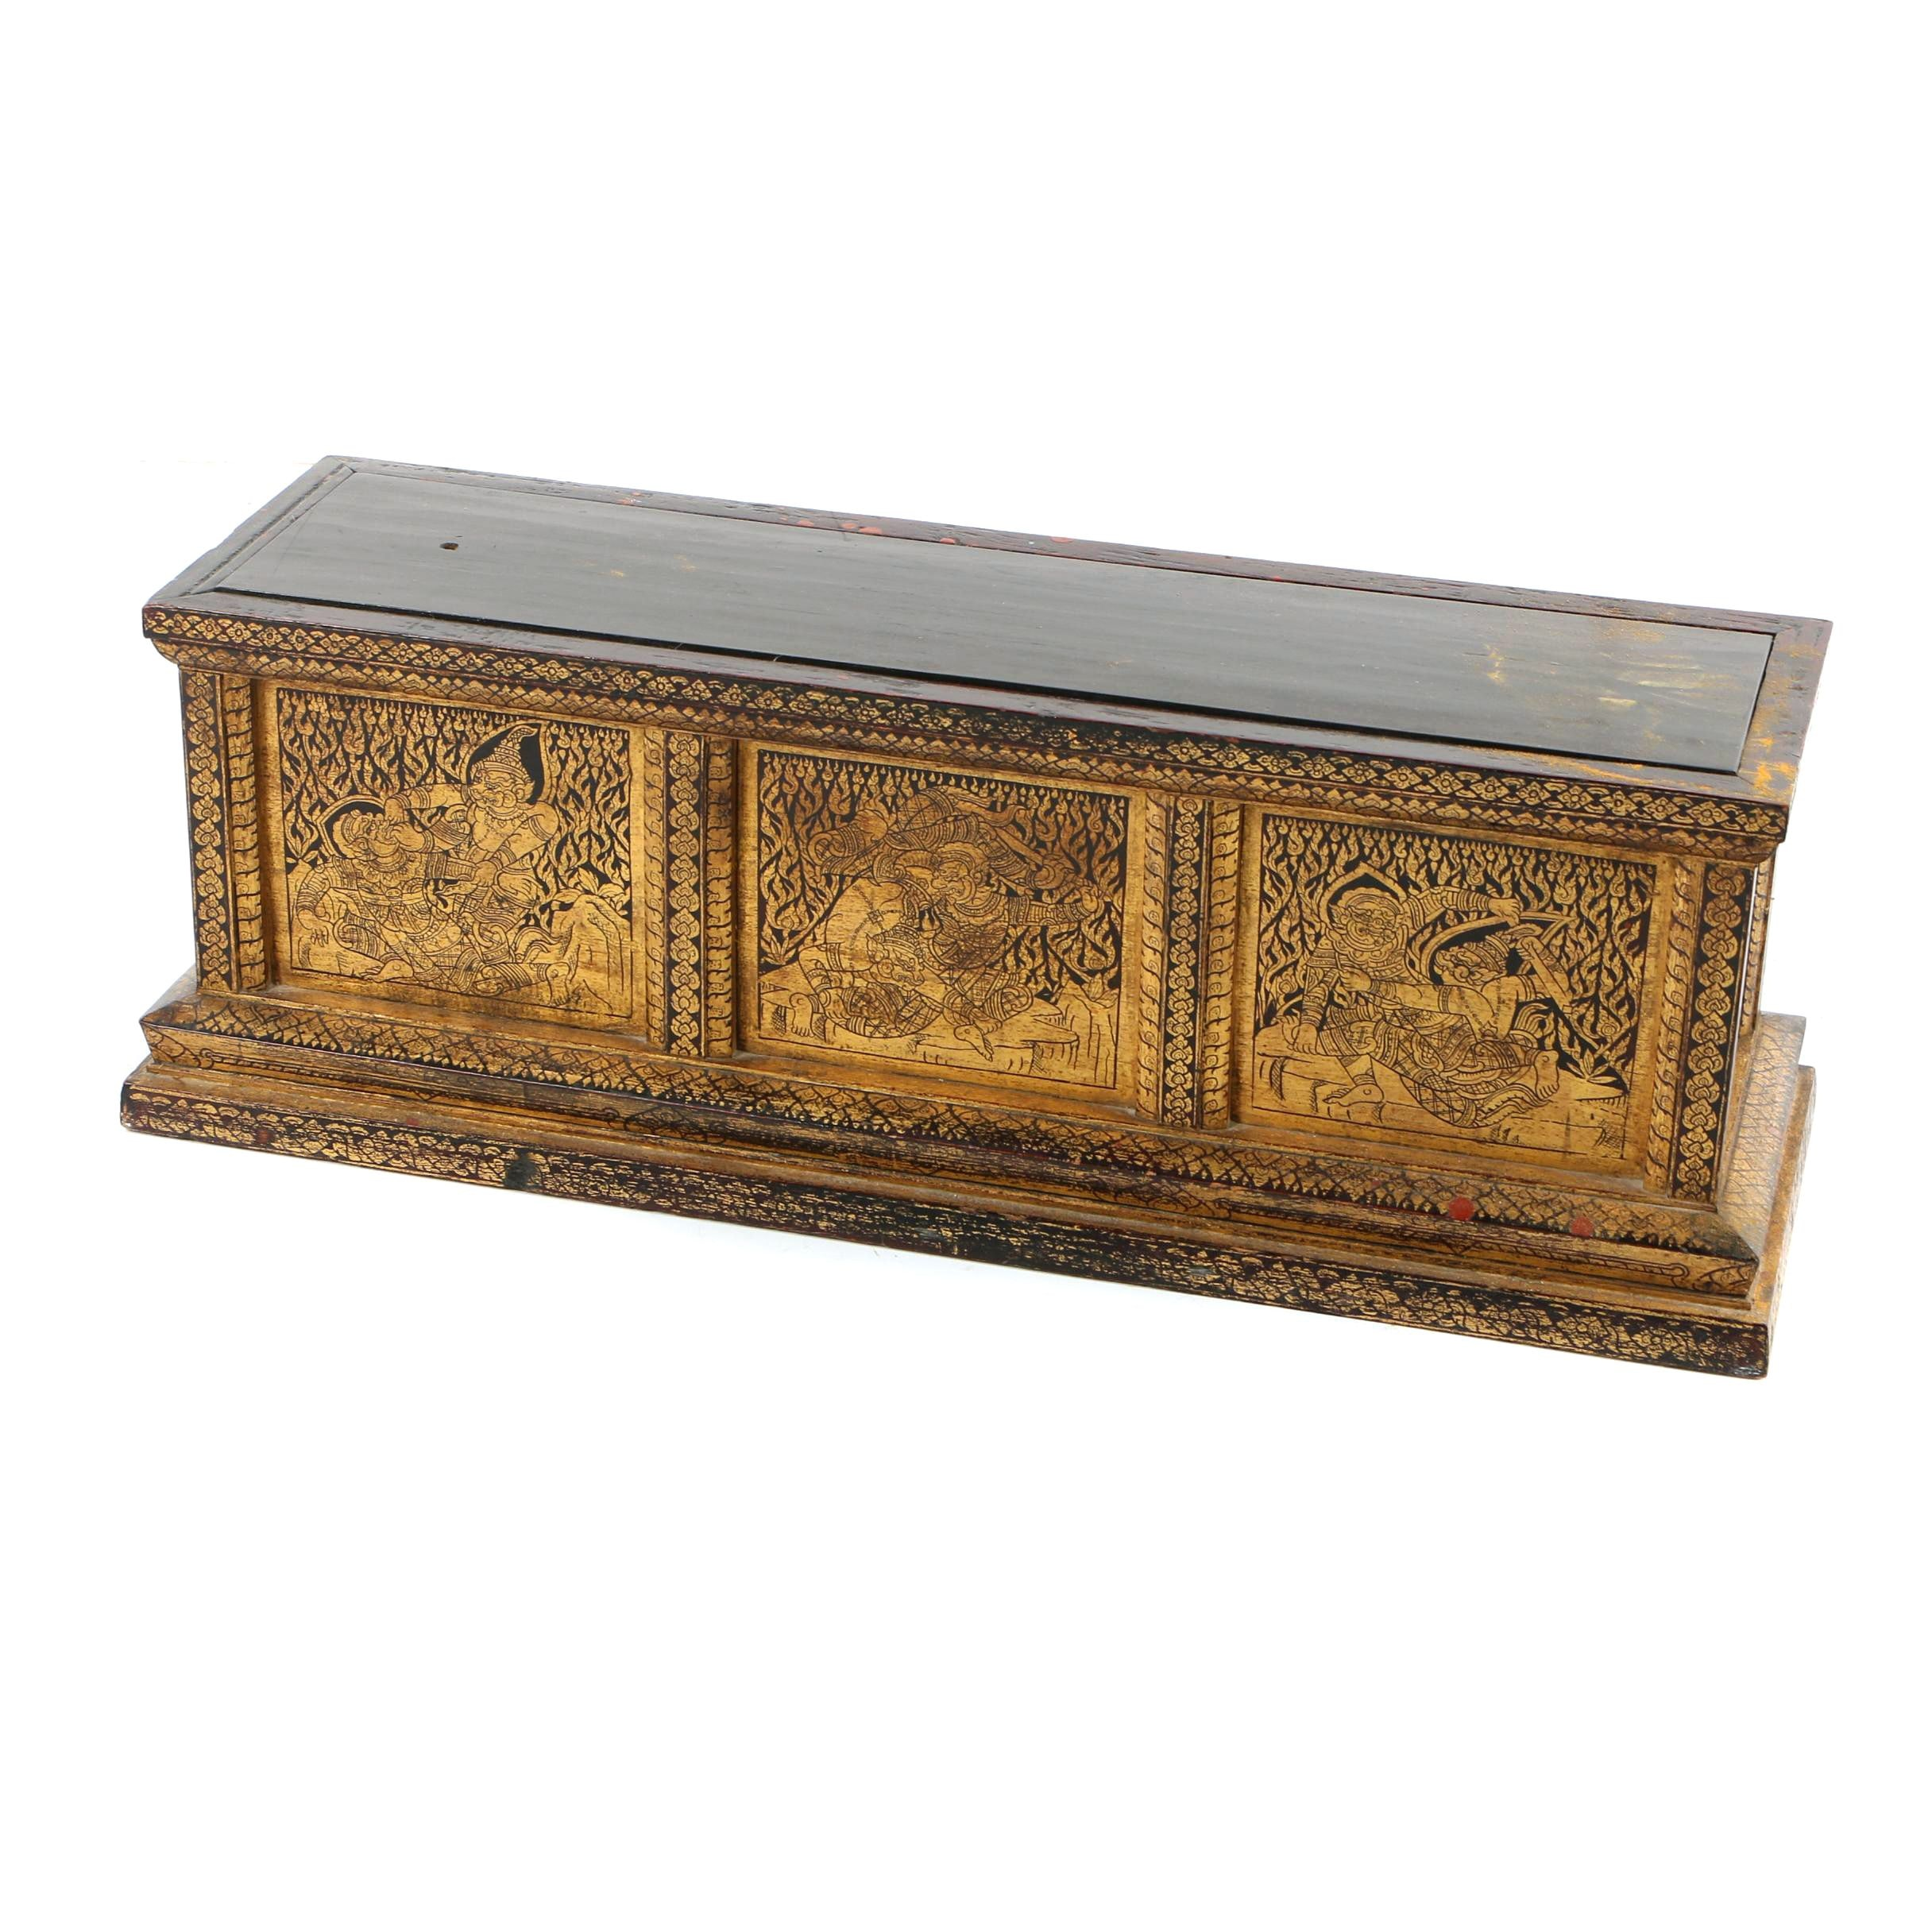 Indonesian Scroll Box with Gilt Accents